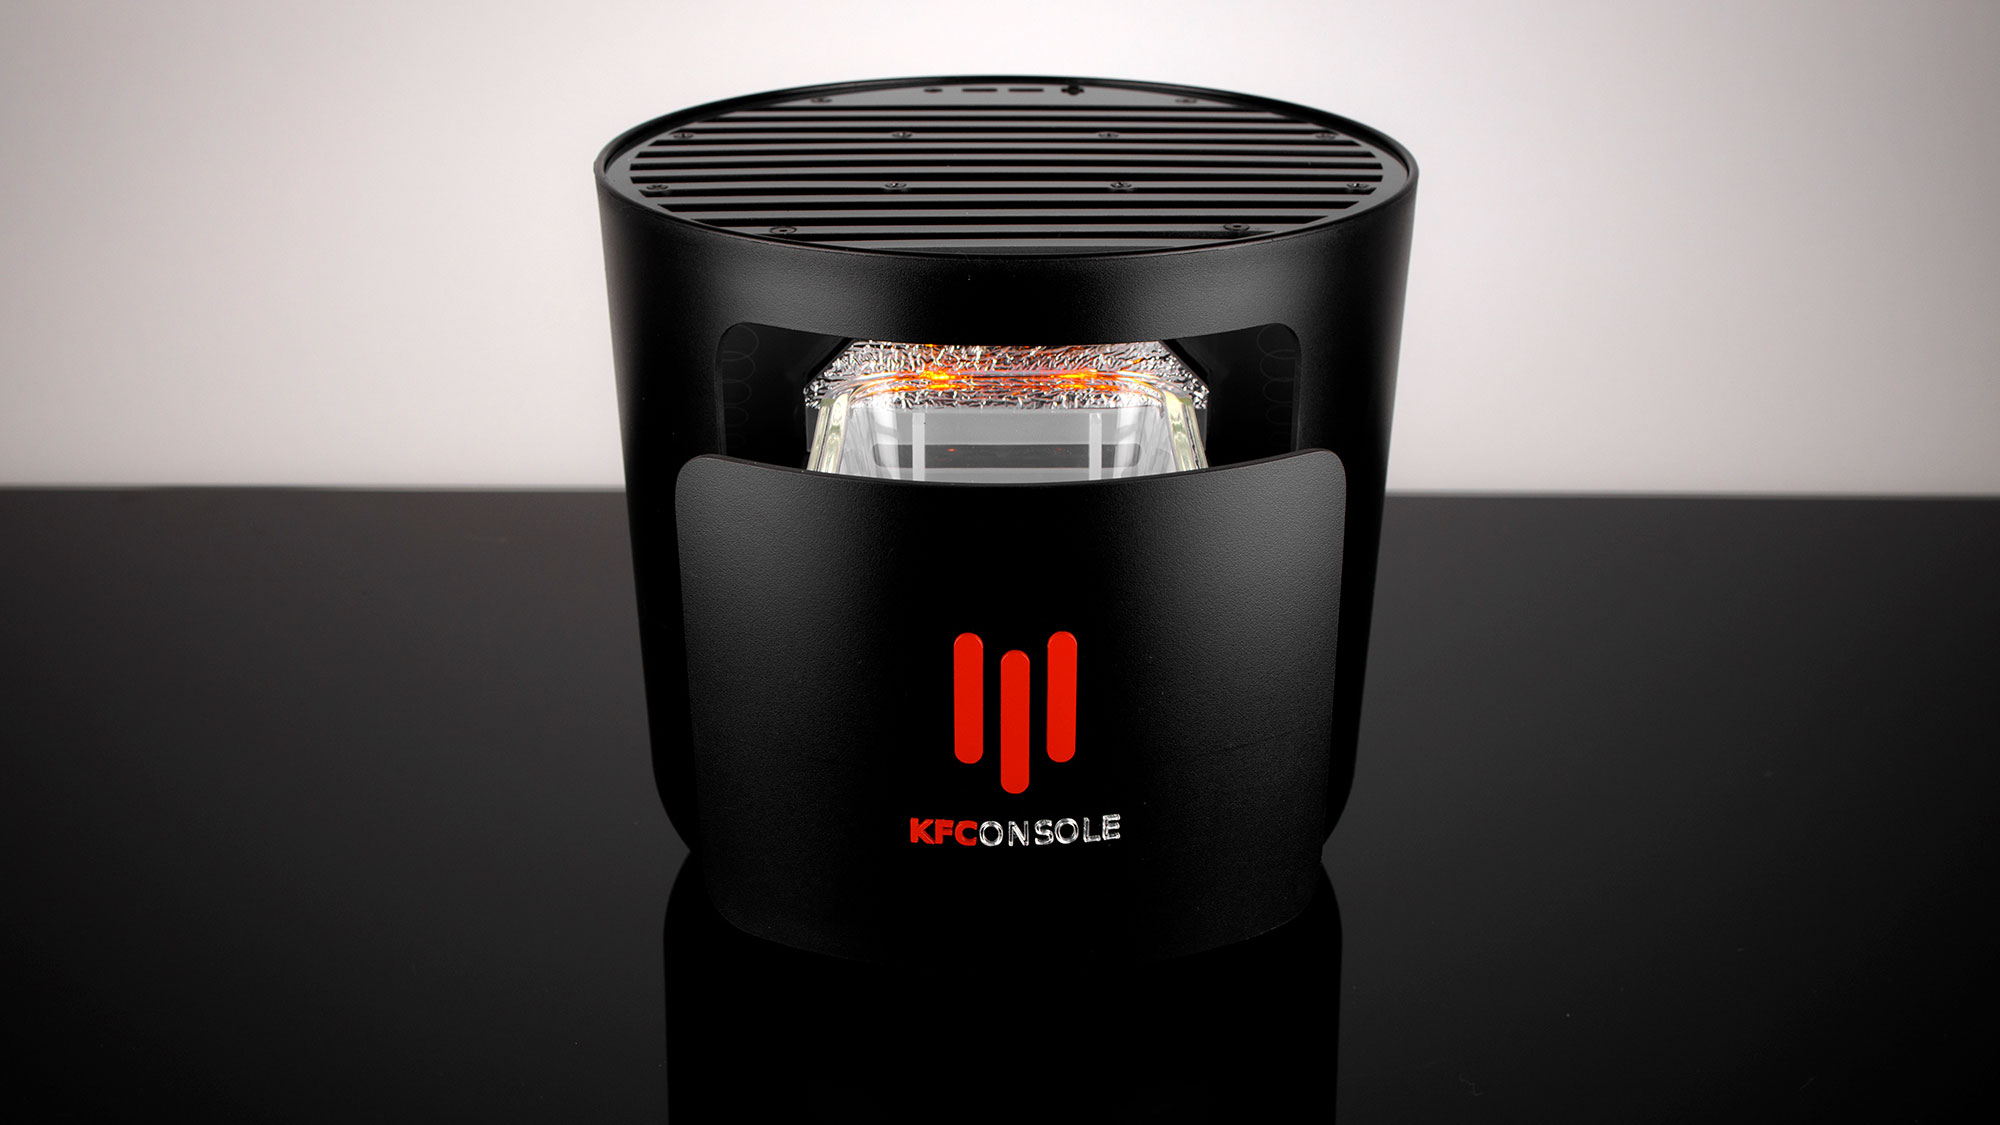 KFConsole Video Game Console by Cooler Master